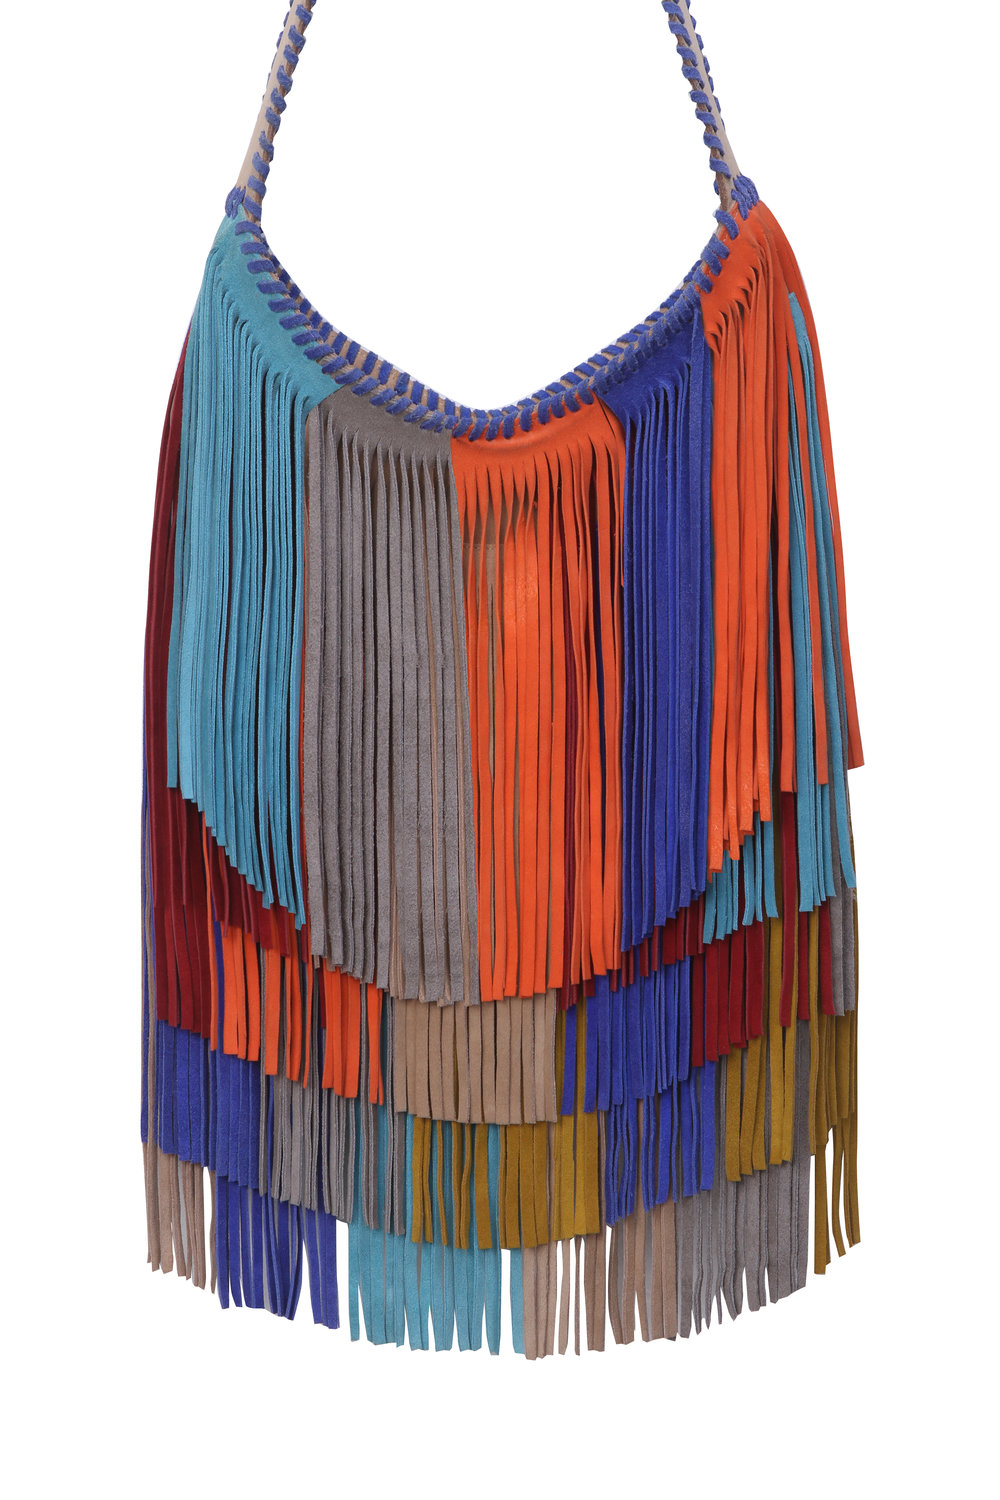 Rainbow Fringe Bag